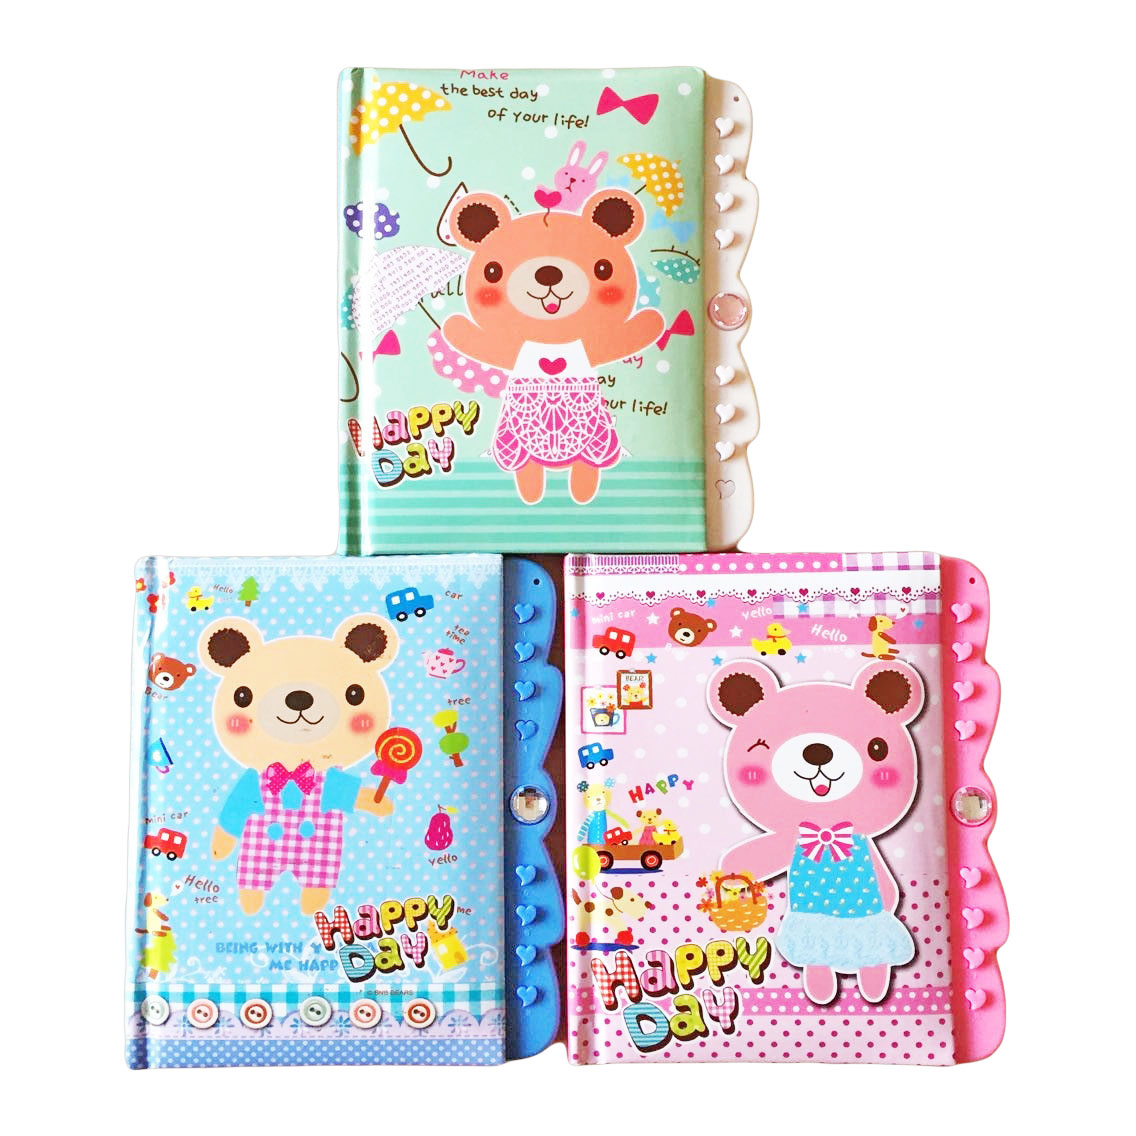 1pcs Cartoon Bear Password Lock Diary Notepad Creative School Supplies For Kids 58 Sheets Daily Memos Notebook(Style Random)